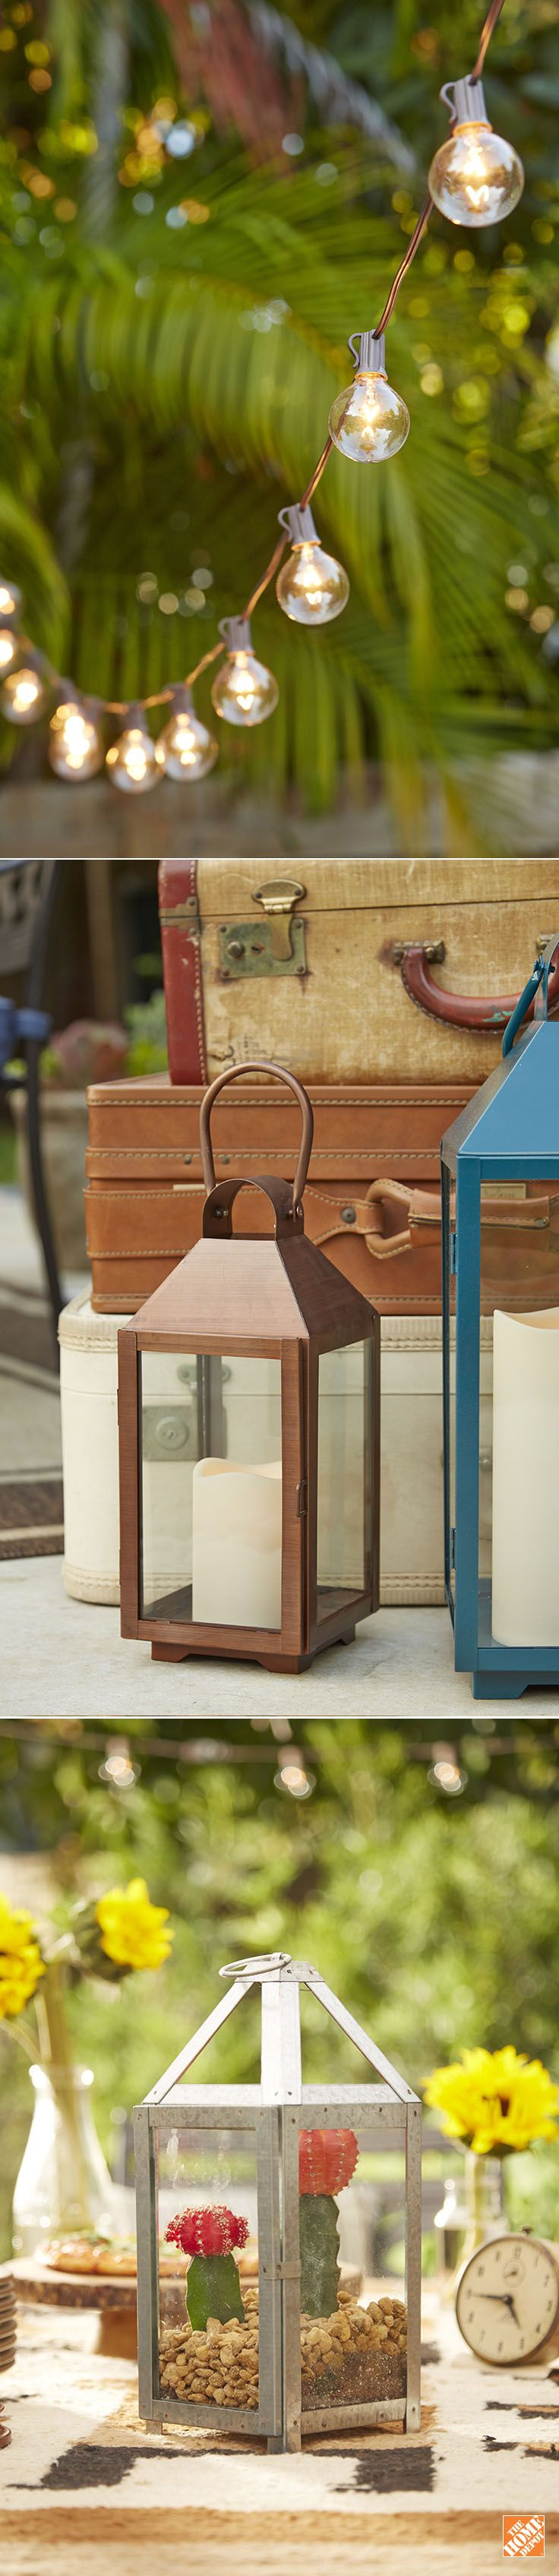 Add magic and beauty to your outdoor living space with festive patio lights! From classic string lights to modern lanterns, you'll find simple, affordable accessories to reflect your style and personality. Click through to browse all our decorative outdoor lights and lanterns.